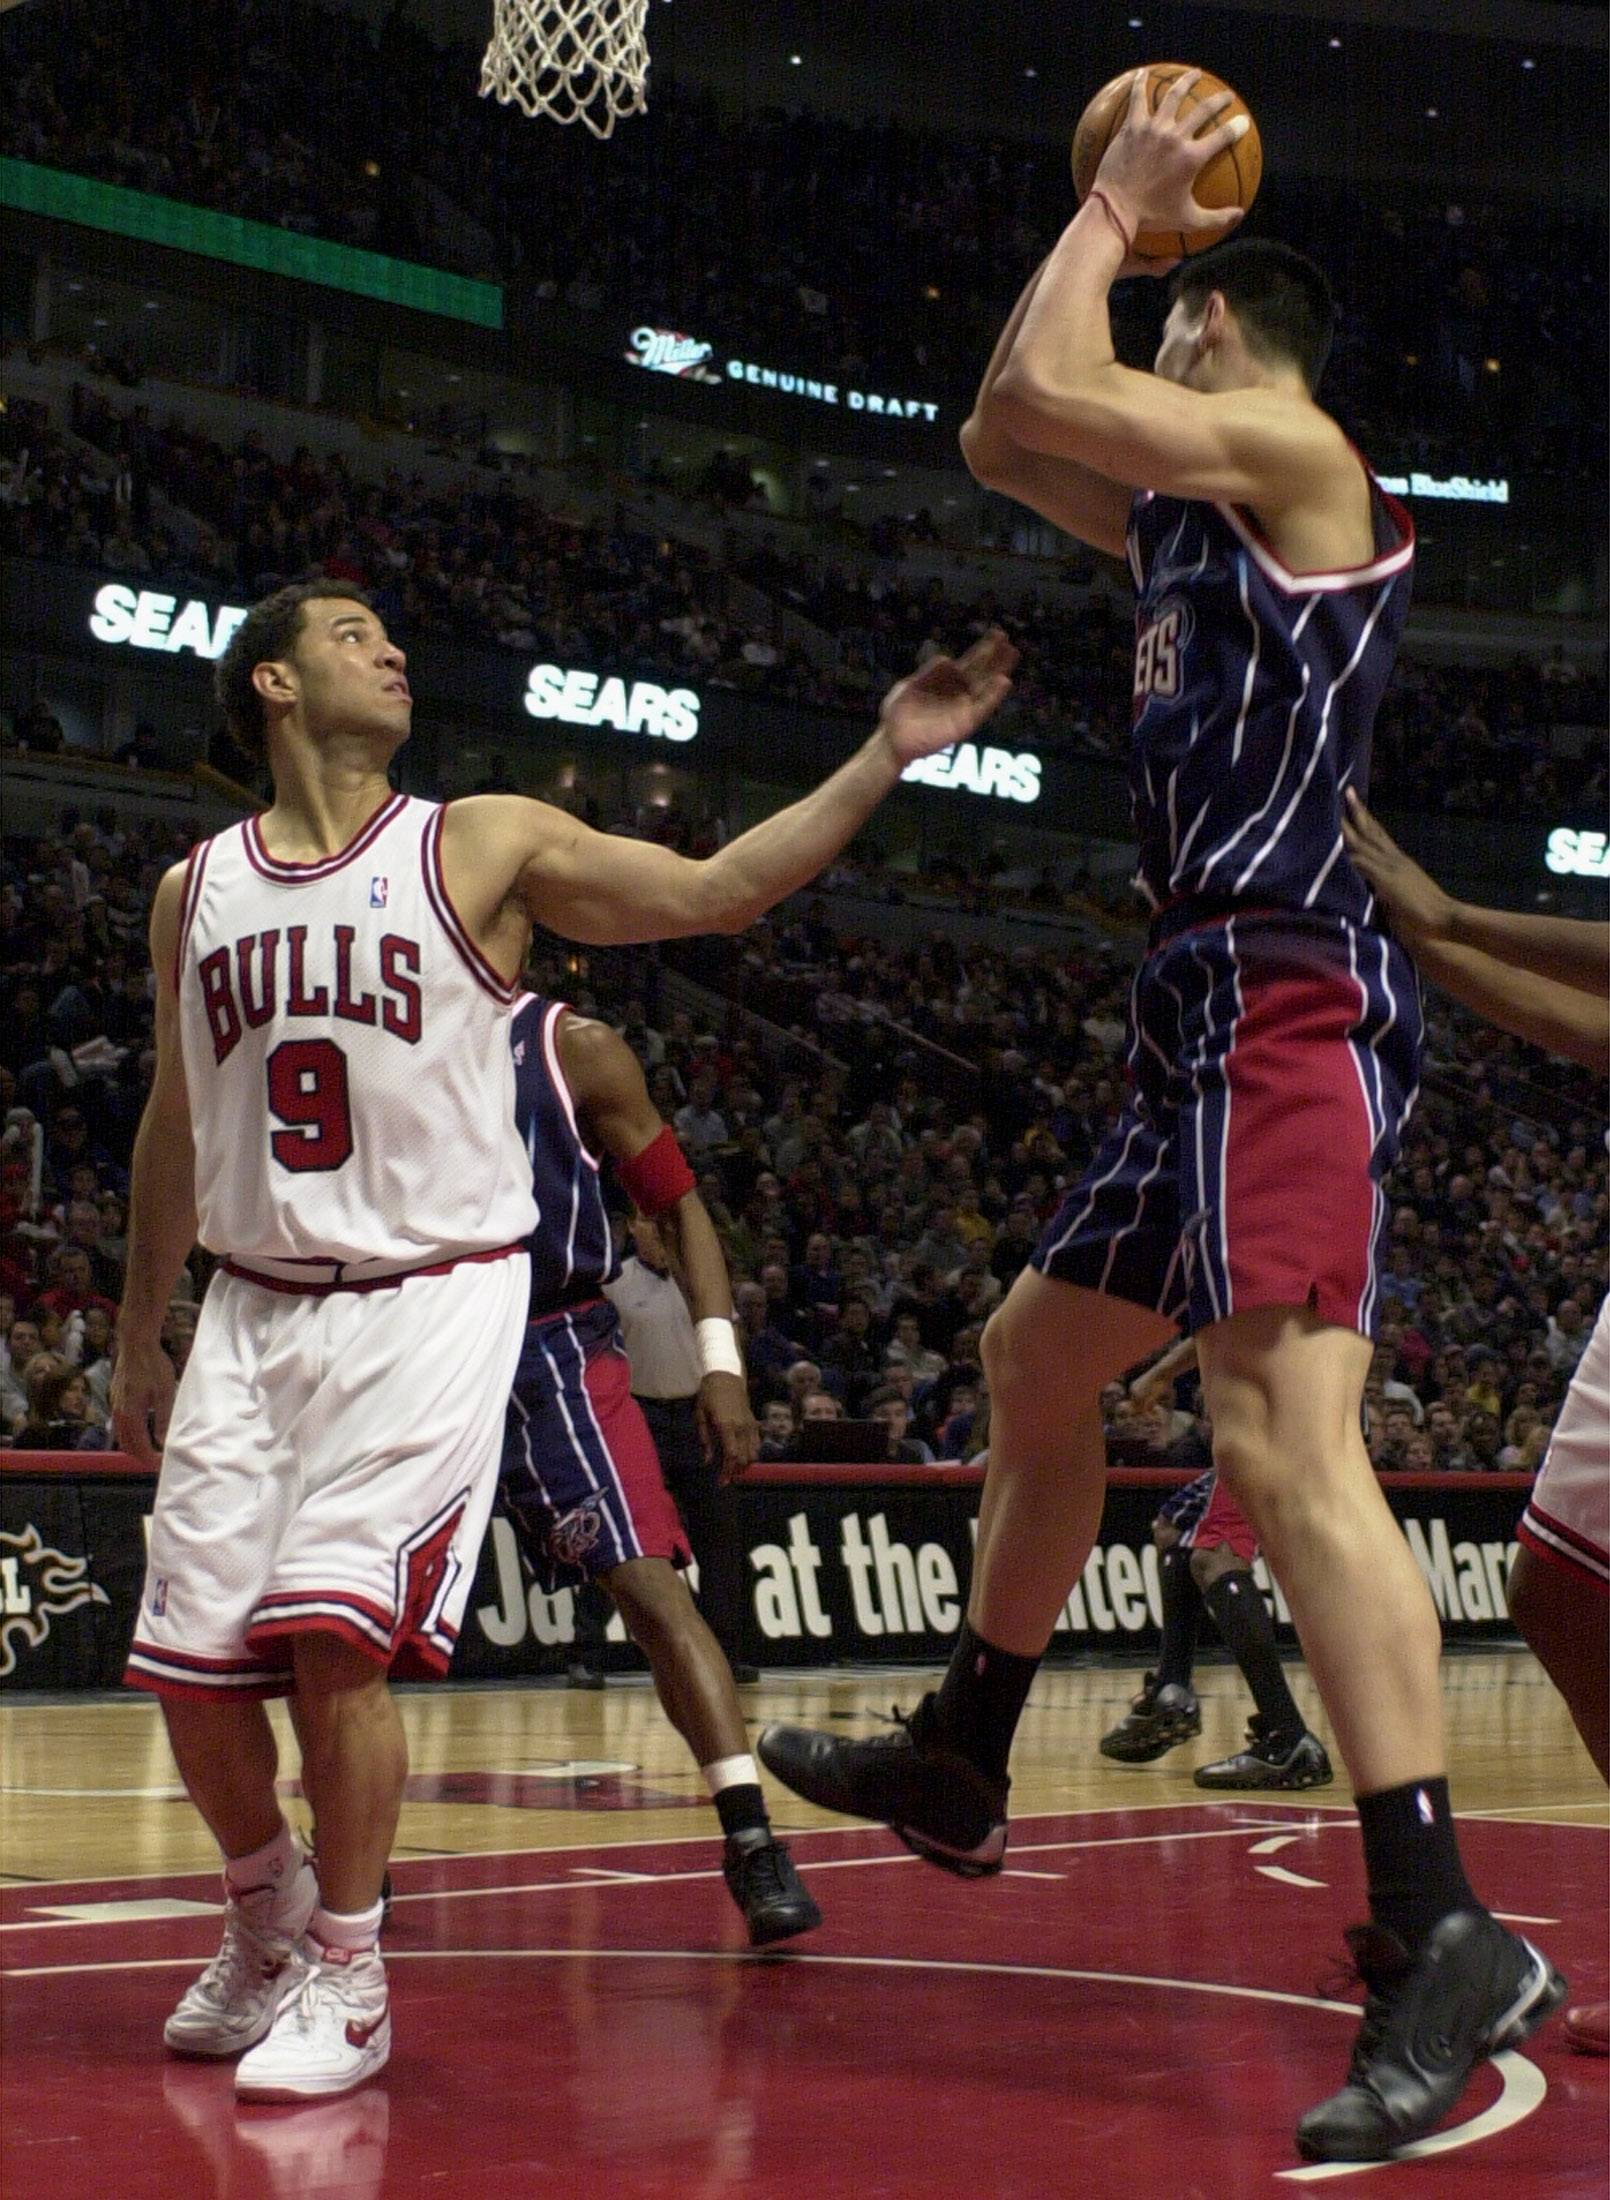 Former Chicago Bull Rick Brunson, left, shown here during a 2003 game against the Houston Rockets, was arrested last week in Vernon Hills on charges of attempted criminal sexual assault, criminal sexual abuse and aggravated battery, according to reports.